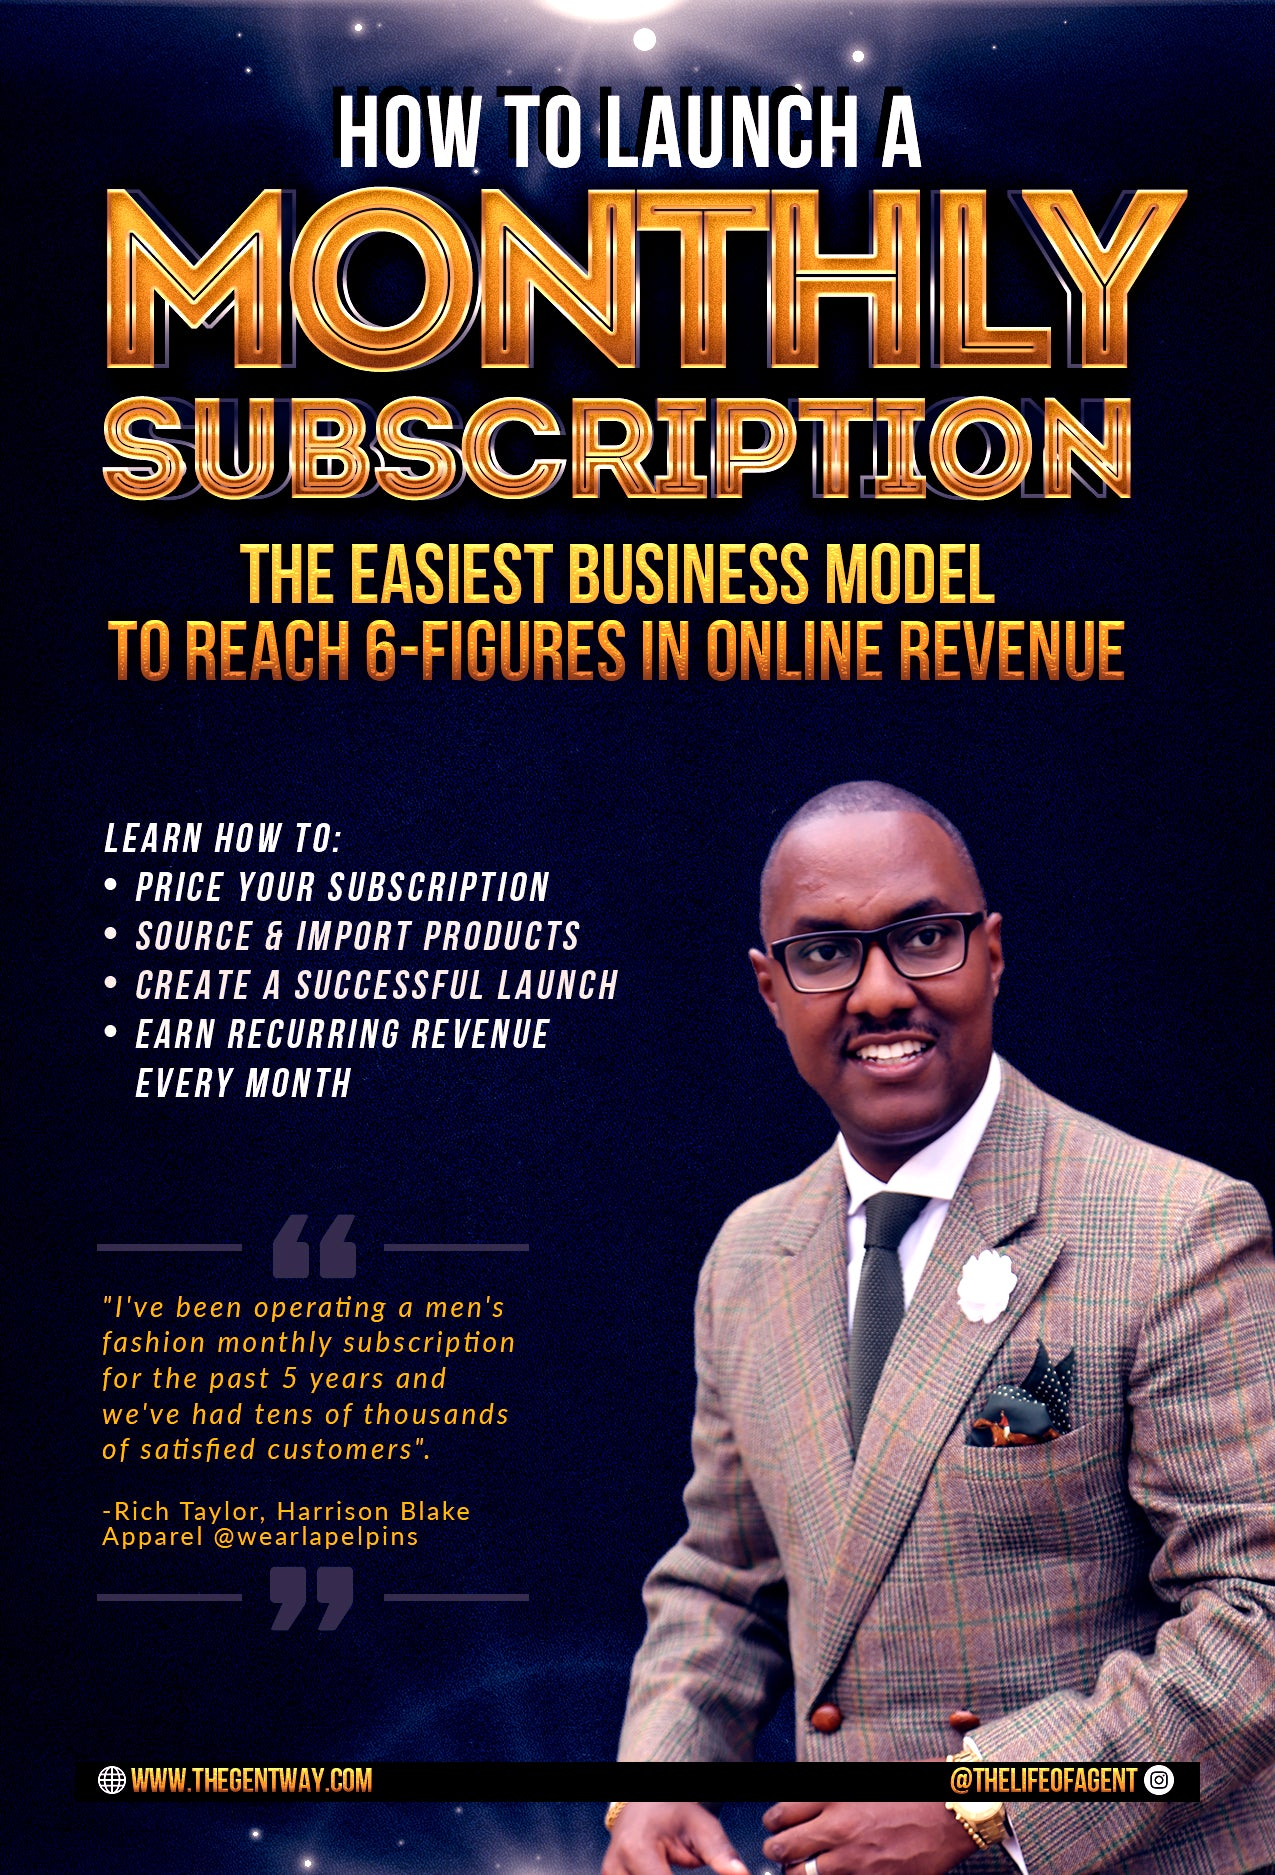 How to Start a Monthly Subscription (1 Hour Training)